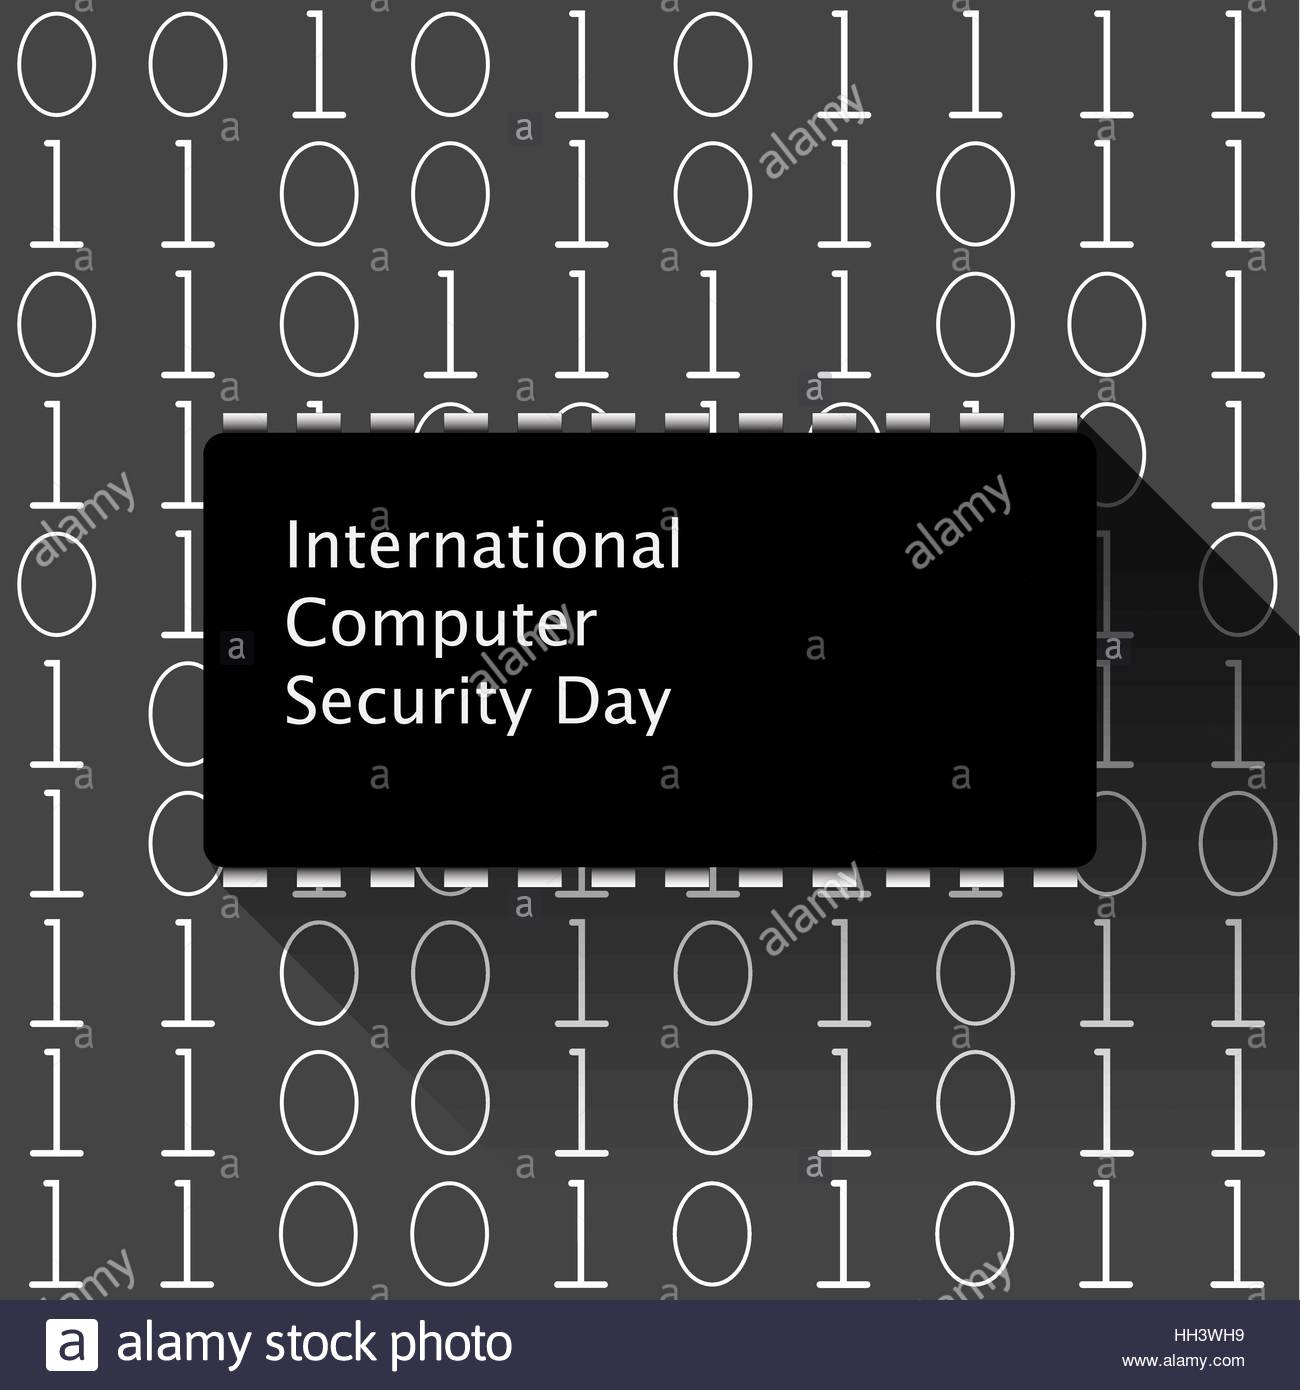 Vector illustration of Computer Security Day Theme - Stock Vector